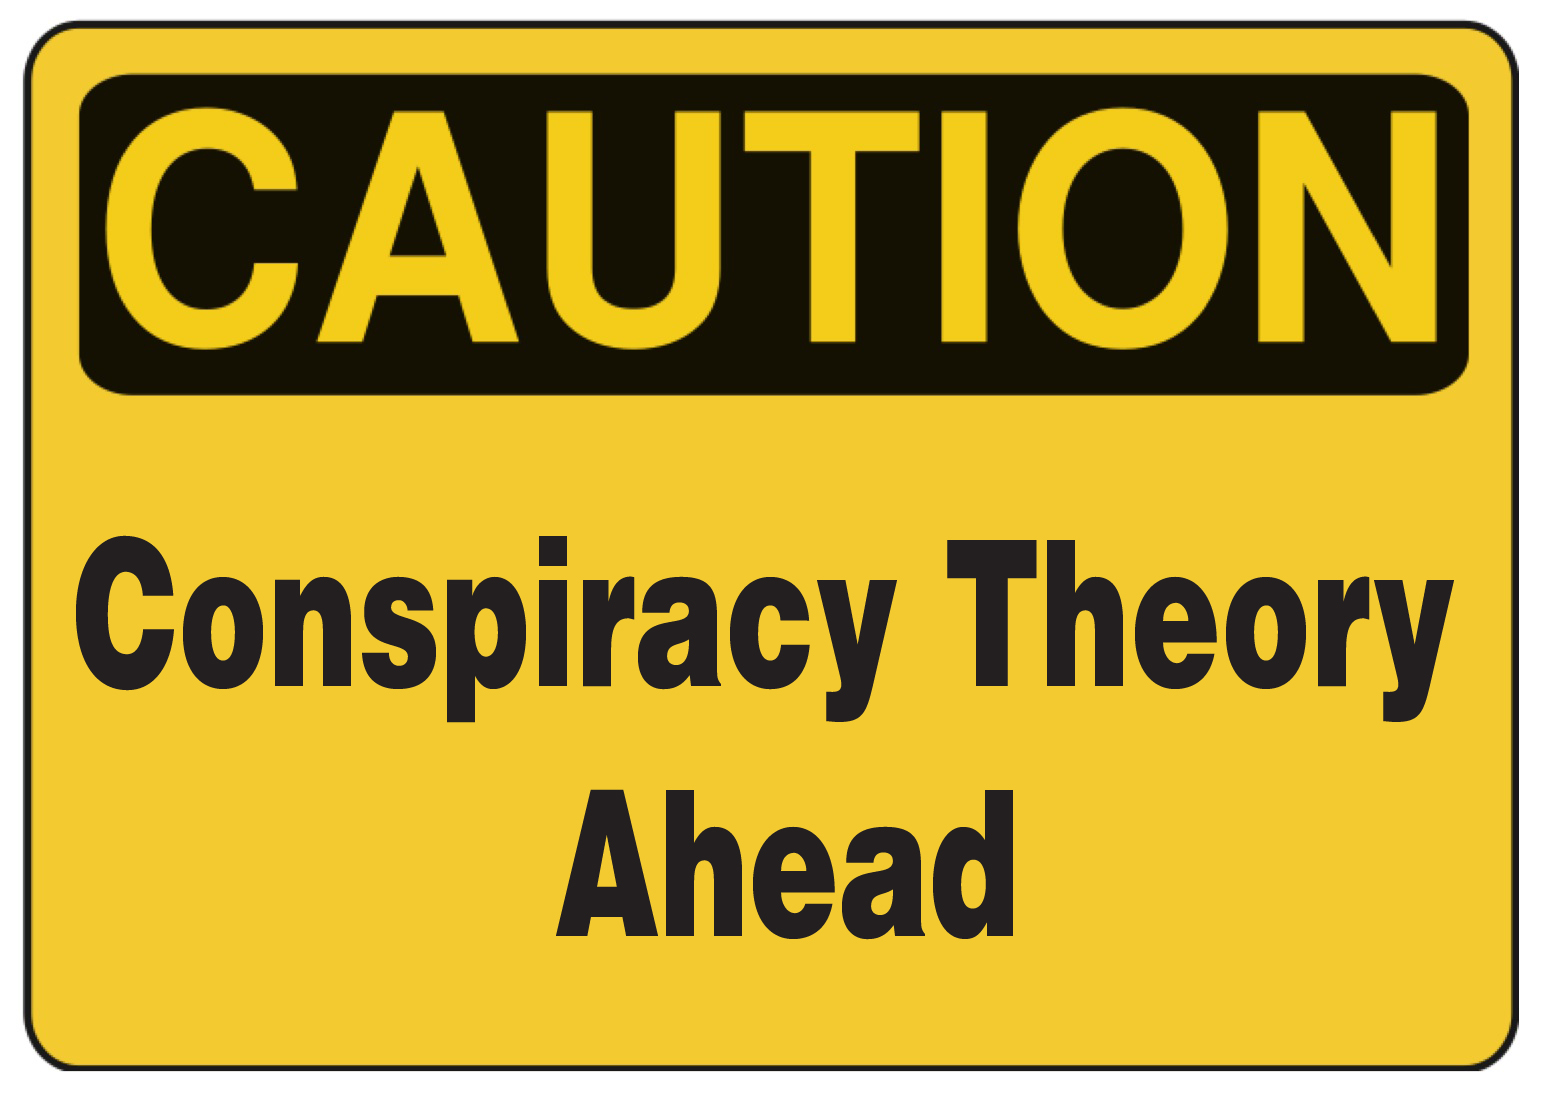 Caution Conspiracy Theory Ahead Sign